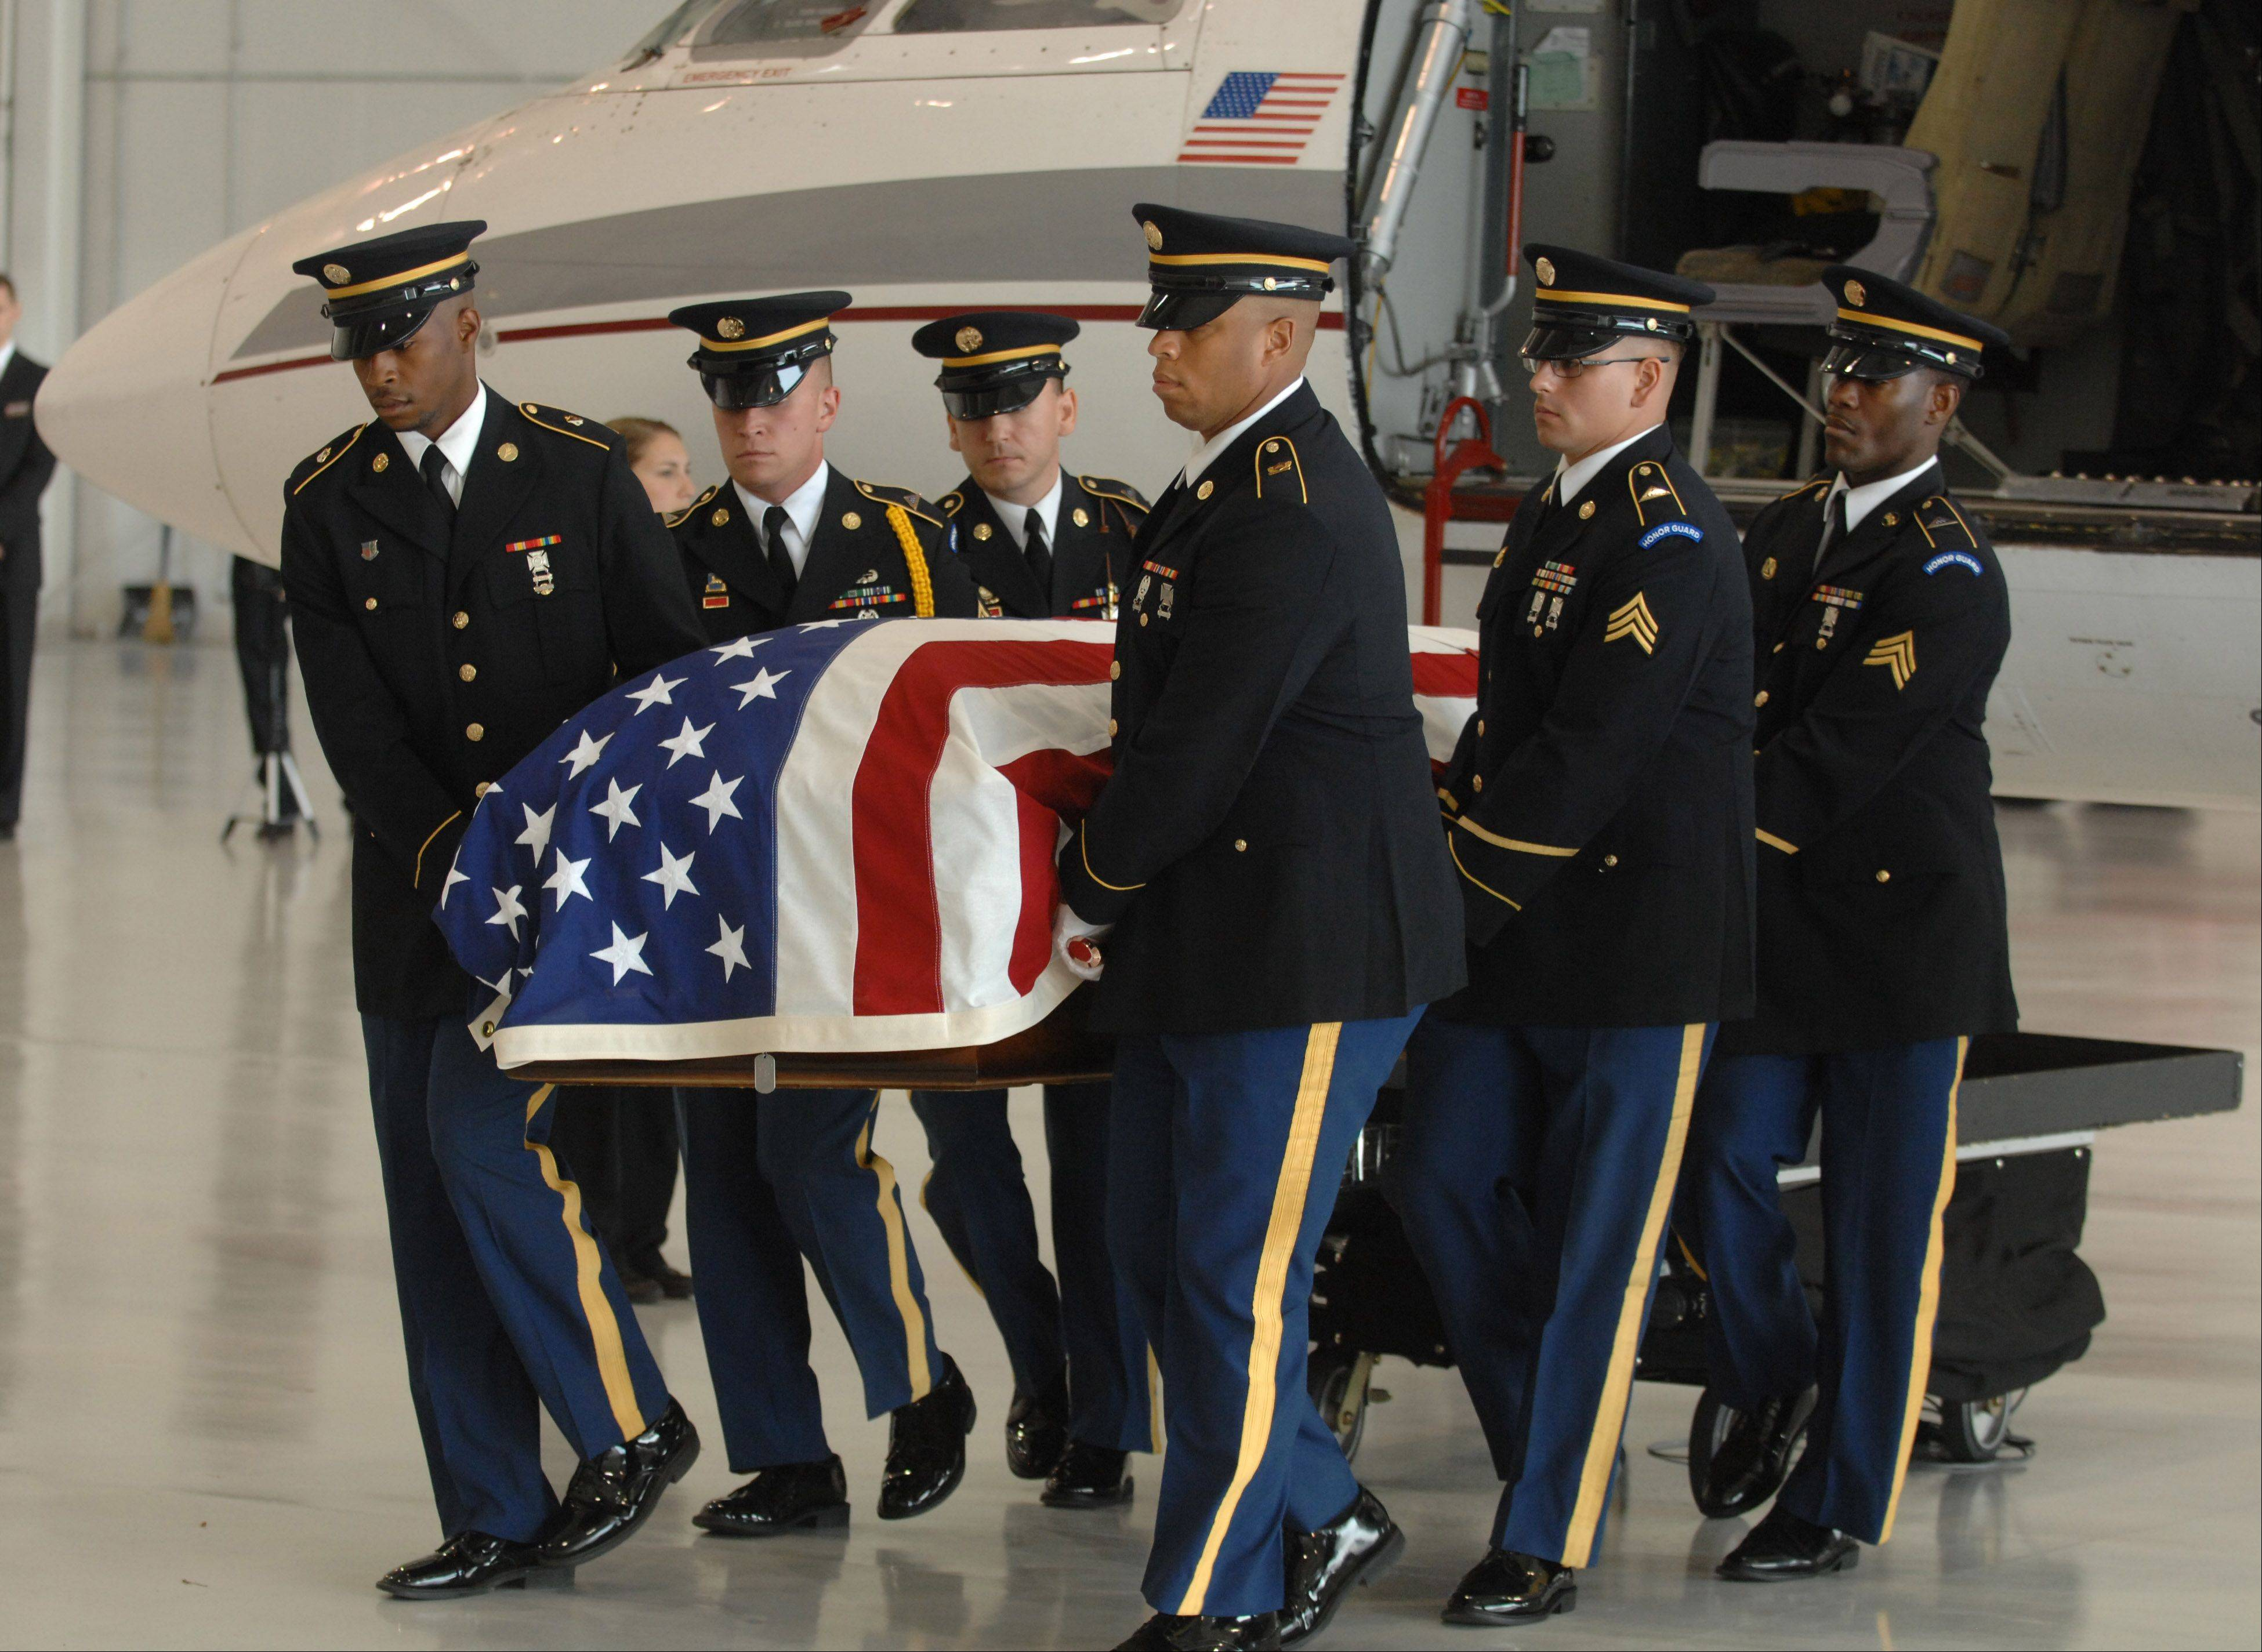 The body of U.S. Army Spec. Samuel T. Watts is brought home through the DuPage Airport in West Chicago Saturday. He was from Wheaton.